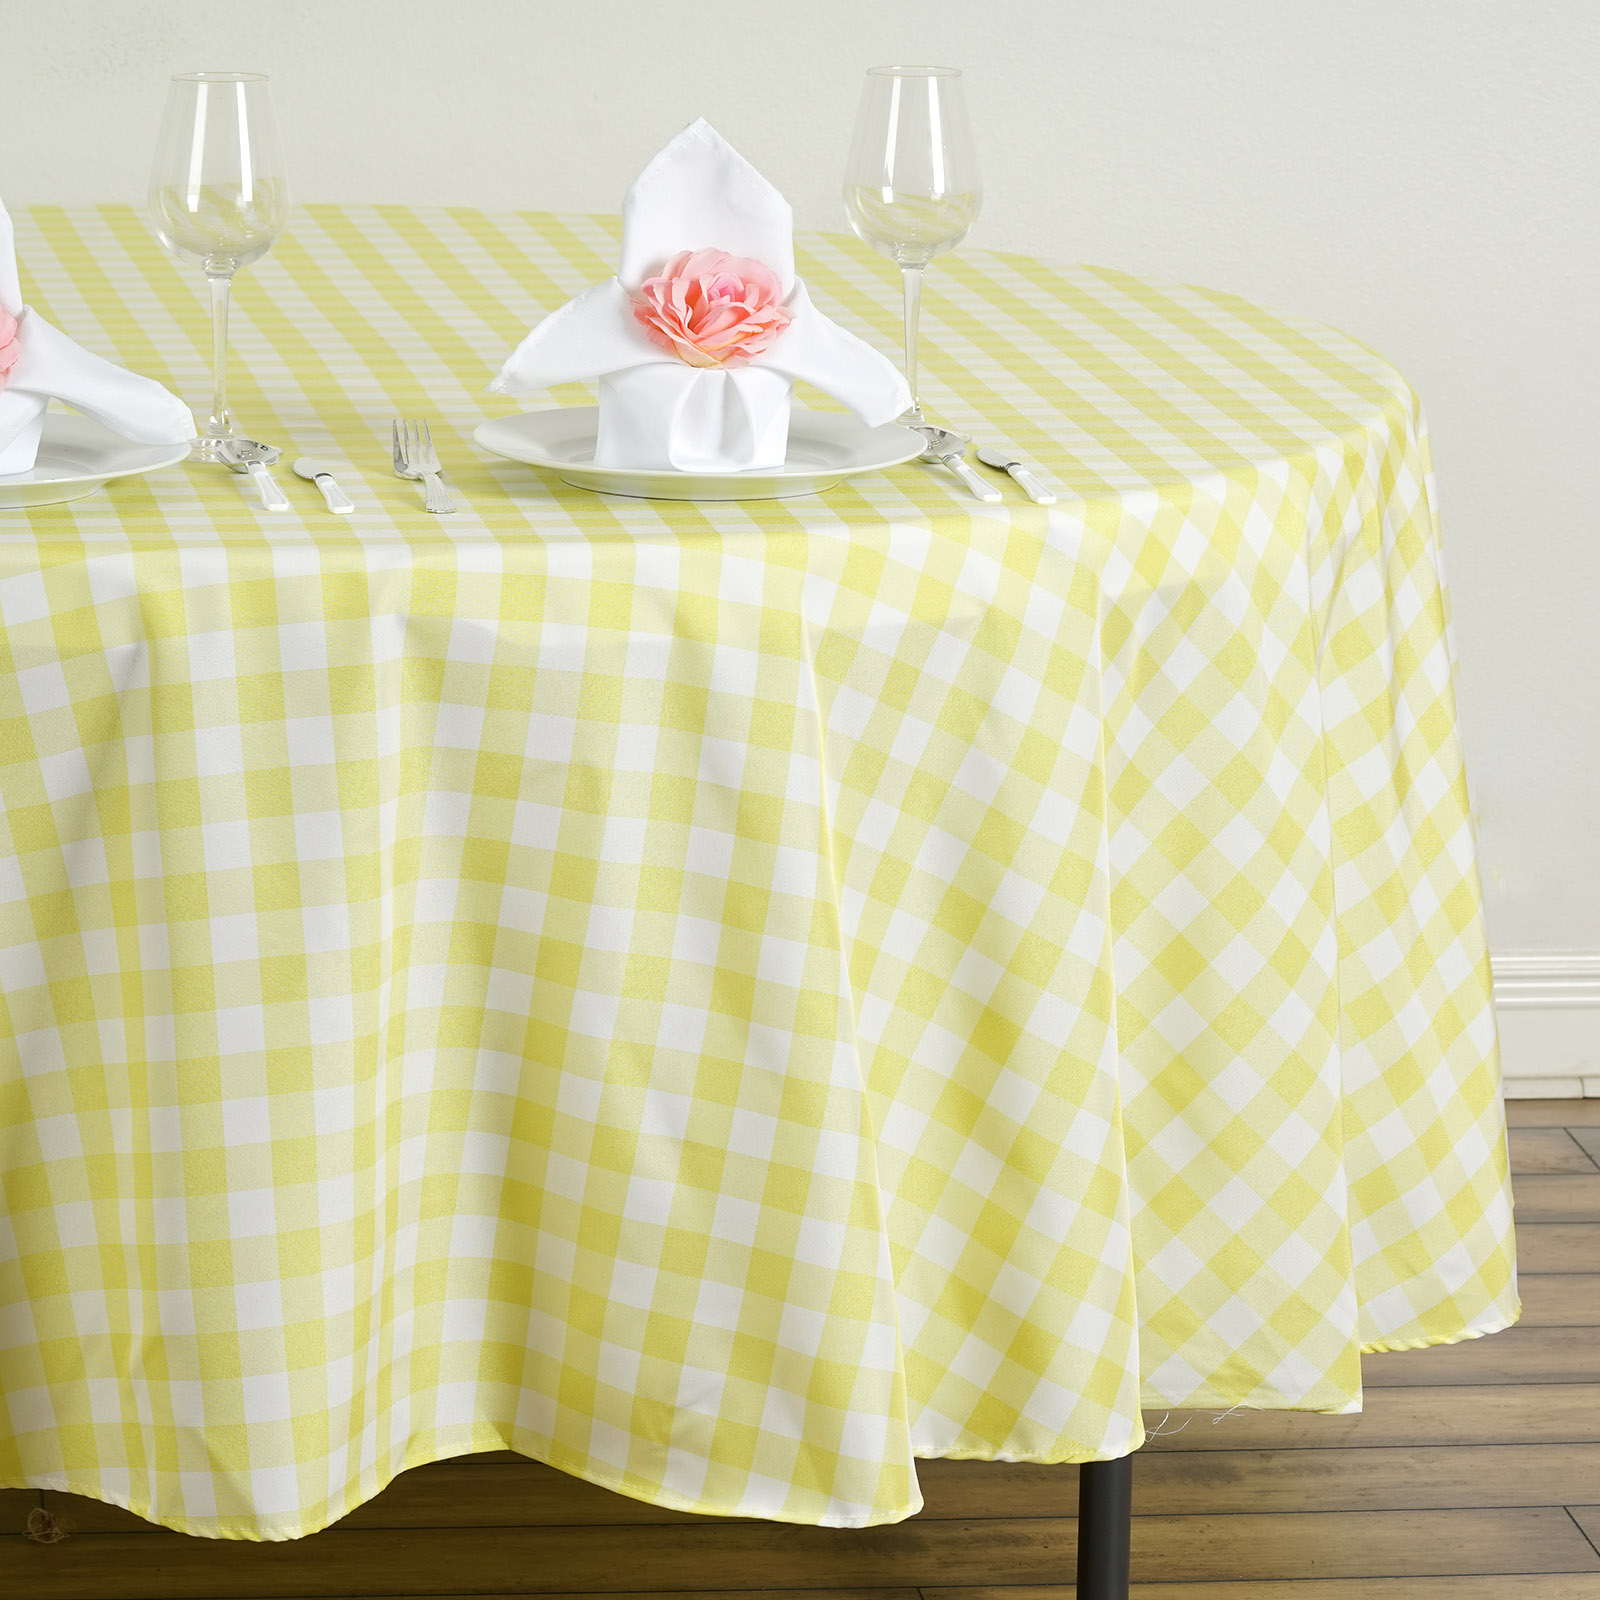 108 checkered gingham polyester round tablecloth wedding for 108 round table cloth